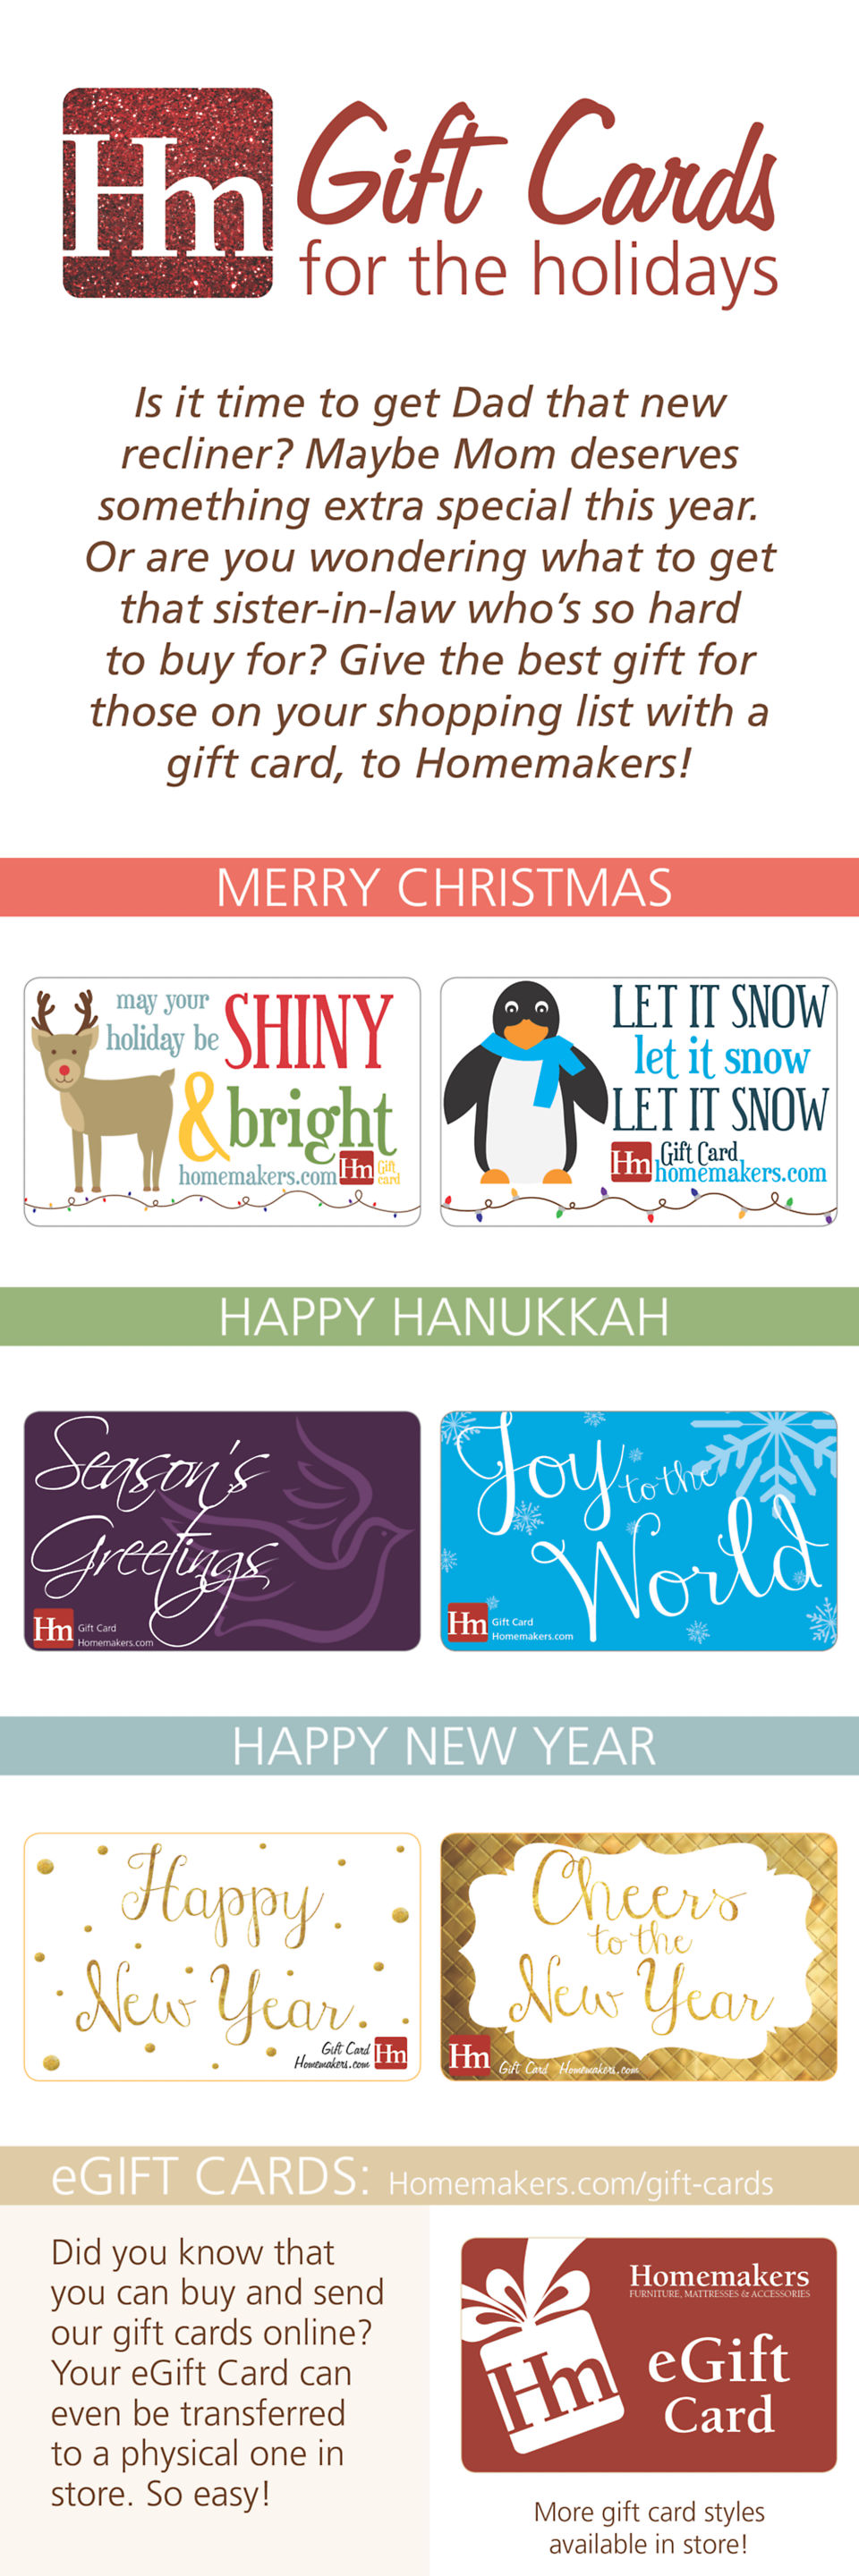 Homemakers Furniture Holiday Gift Card Infographic